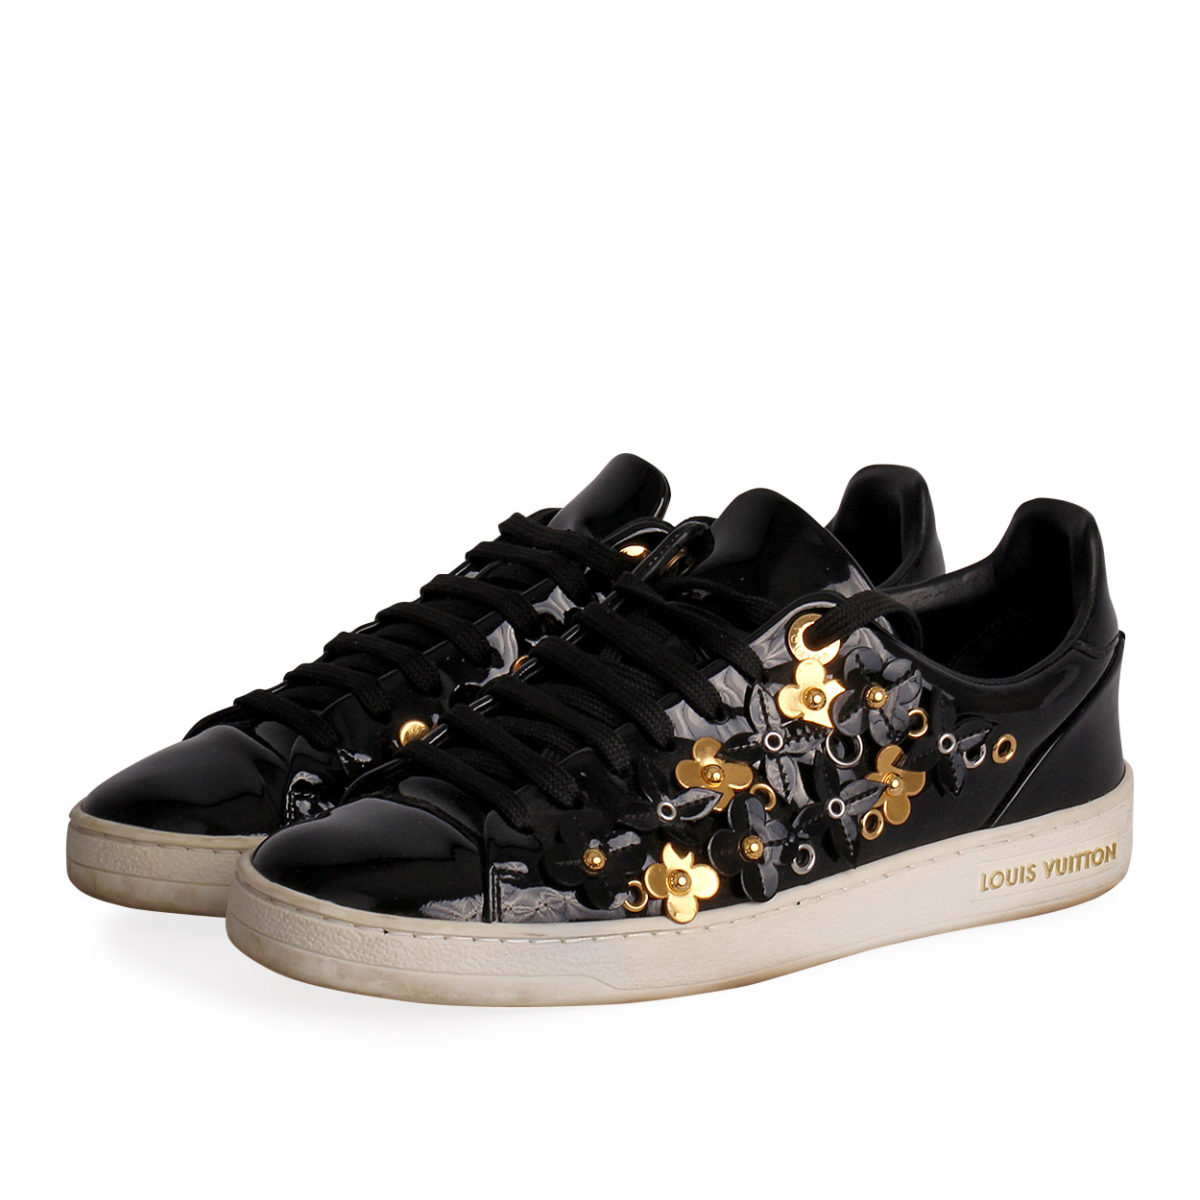 a62f415e0e99 LOUIS VUITTON Patent Blossom Frontrow Sneakers Black - S  36 (3 ...